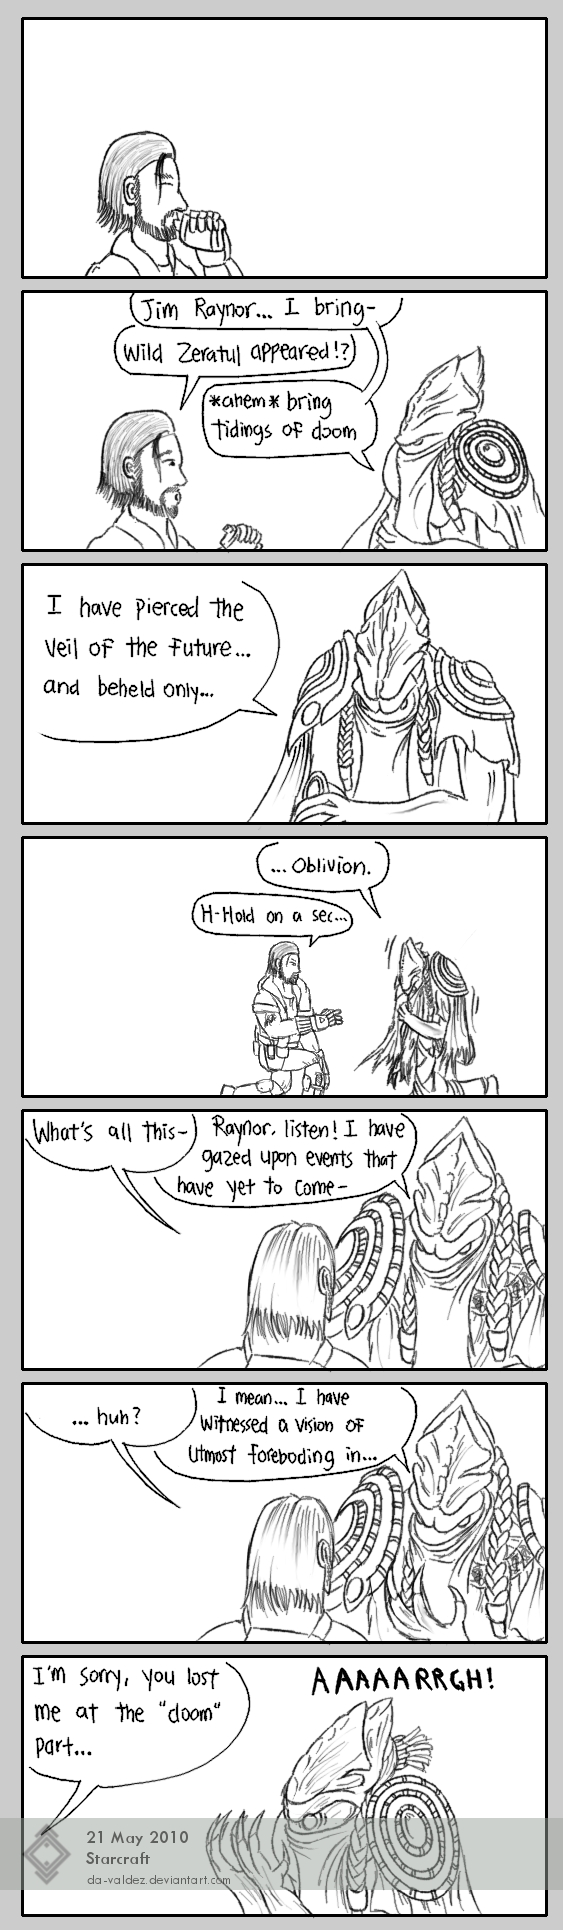 Wild Zeratul Appeared by DA-Valdez